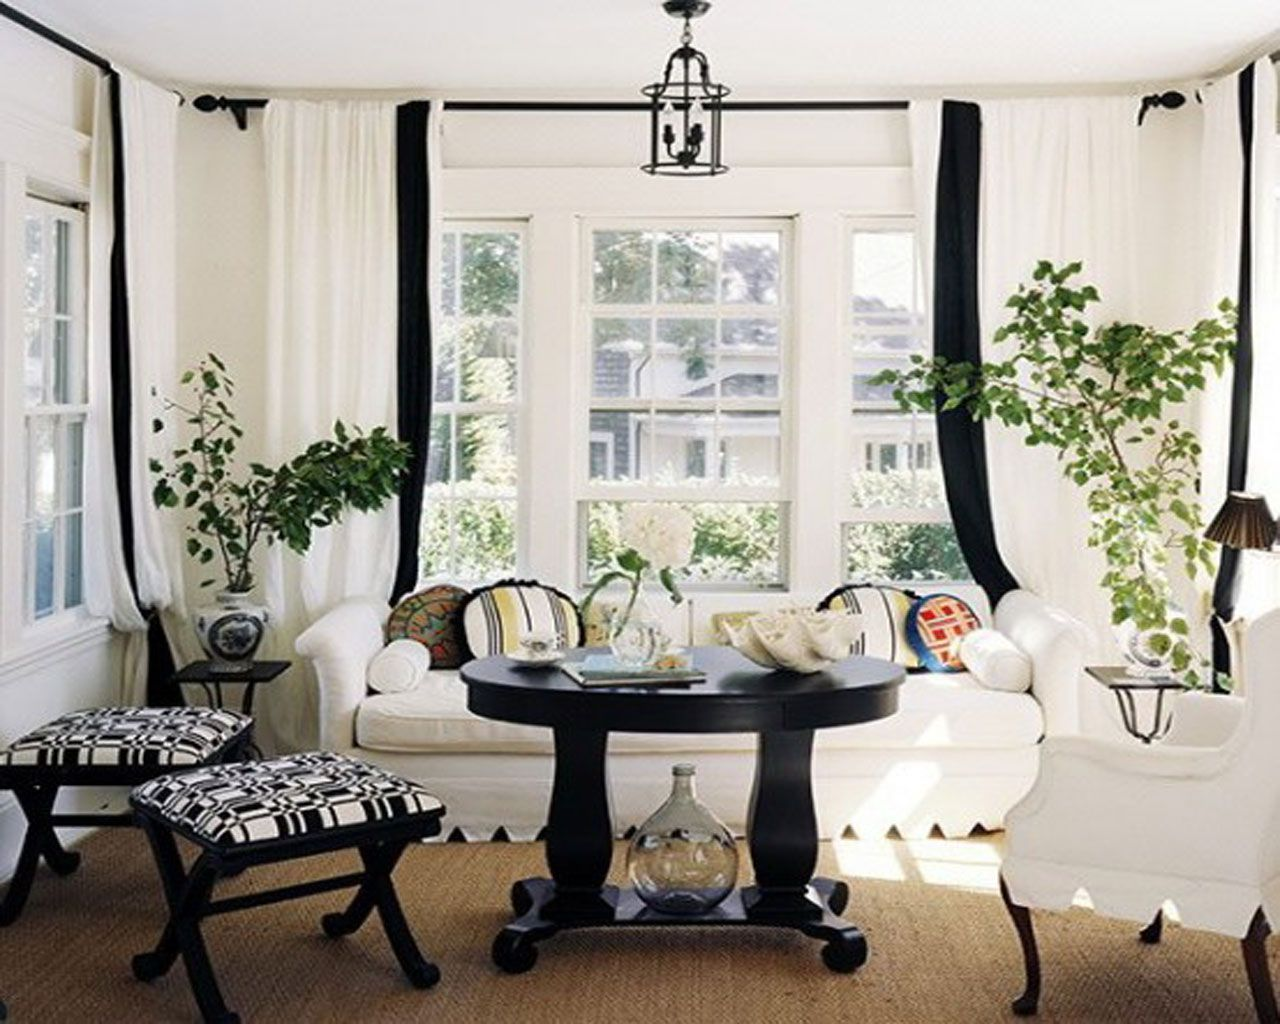 How to Make Small Living Room Look Bigger? - http://www.lyncho.com ...